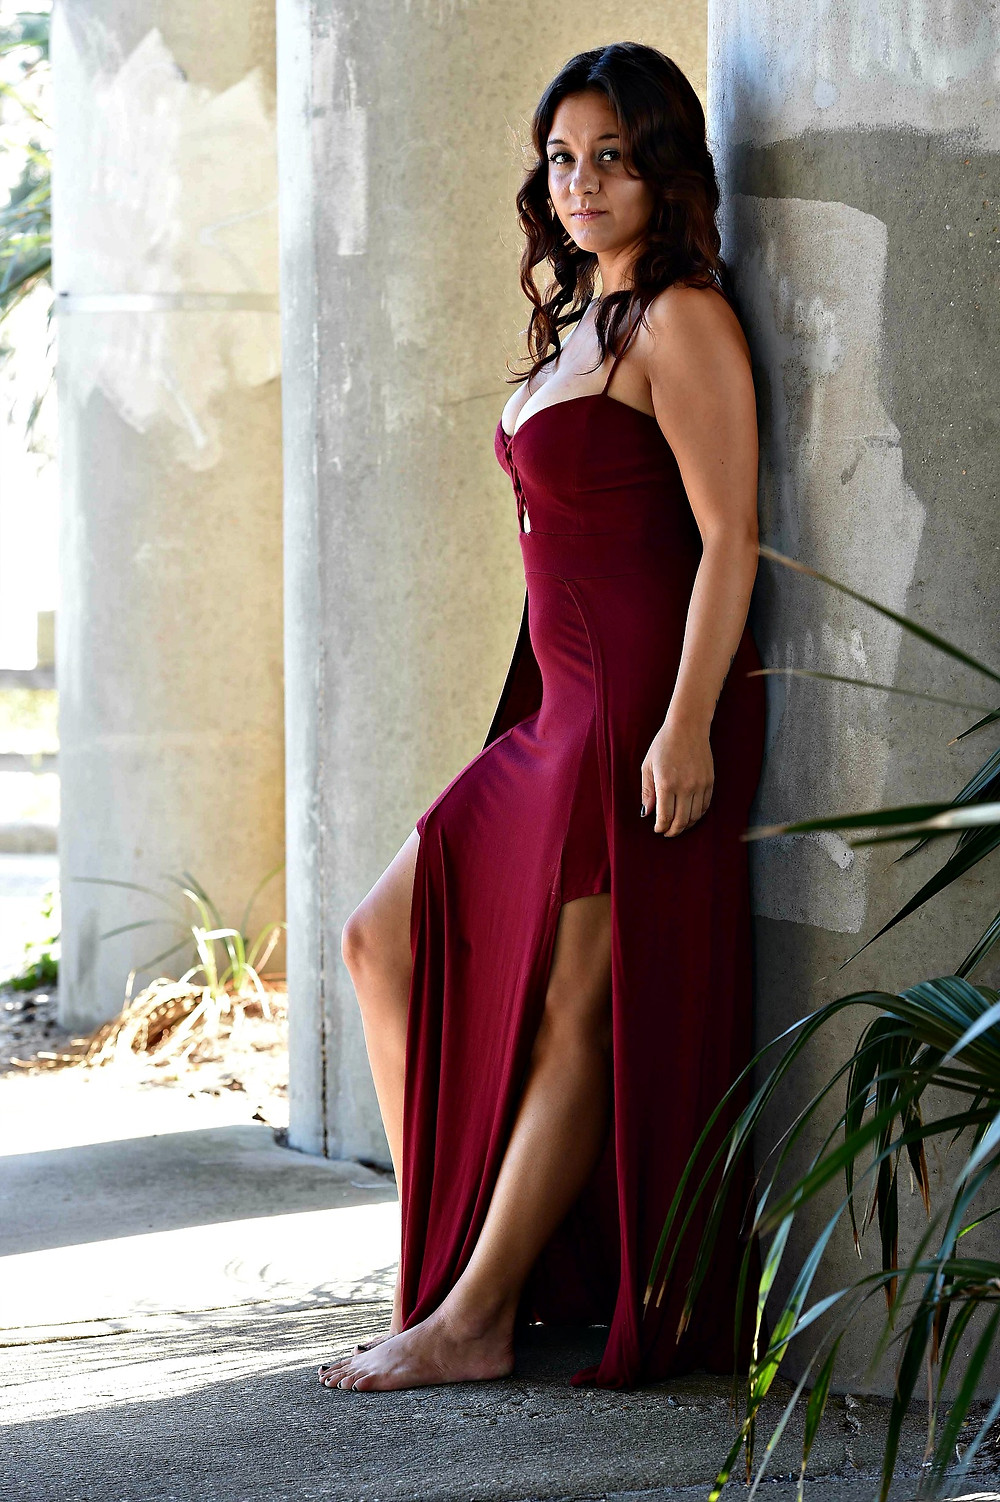 A style blogger wears a maroon maxi dress with side slits.